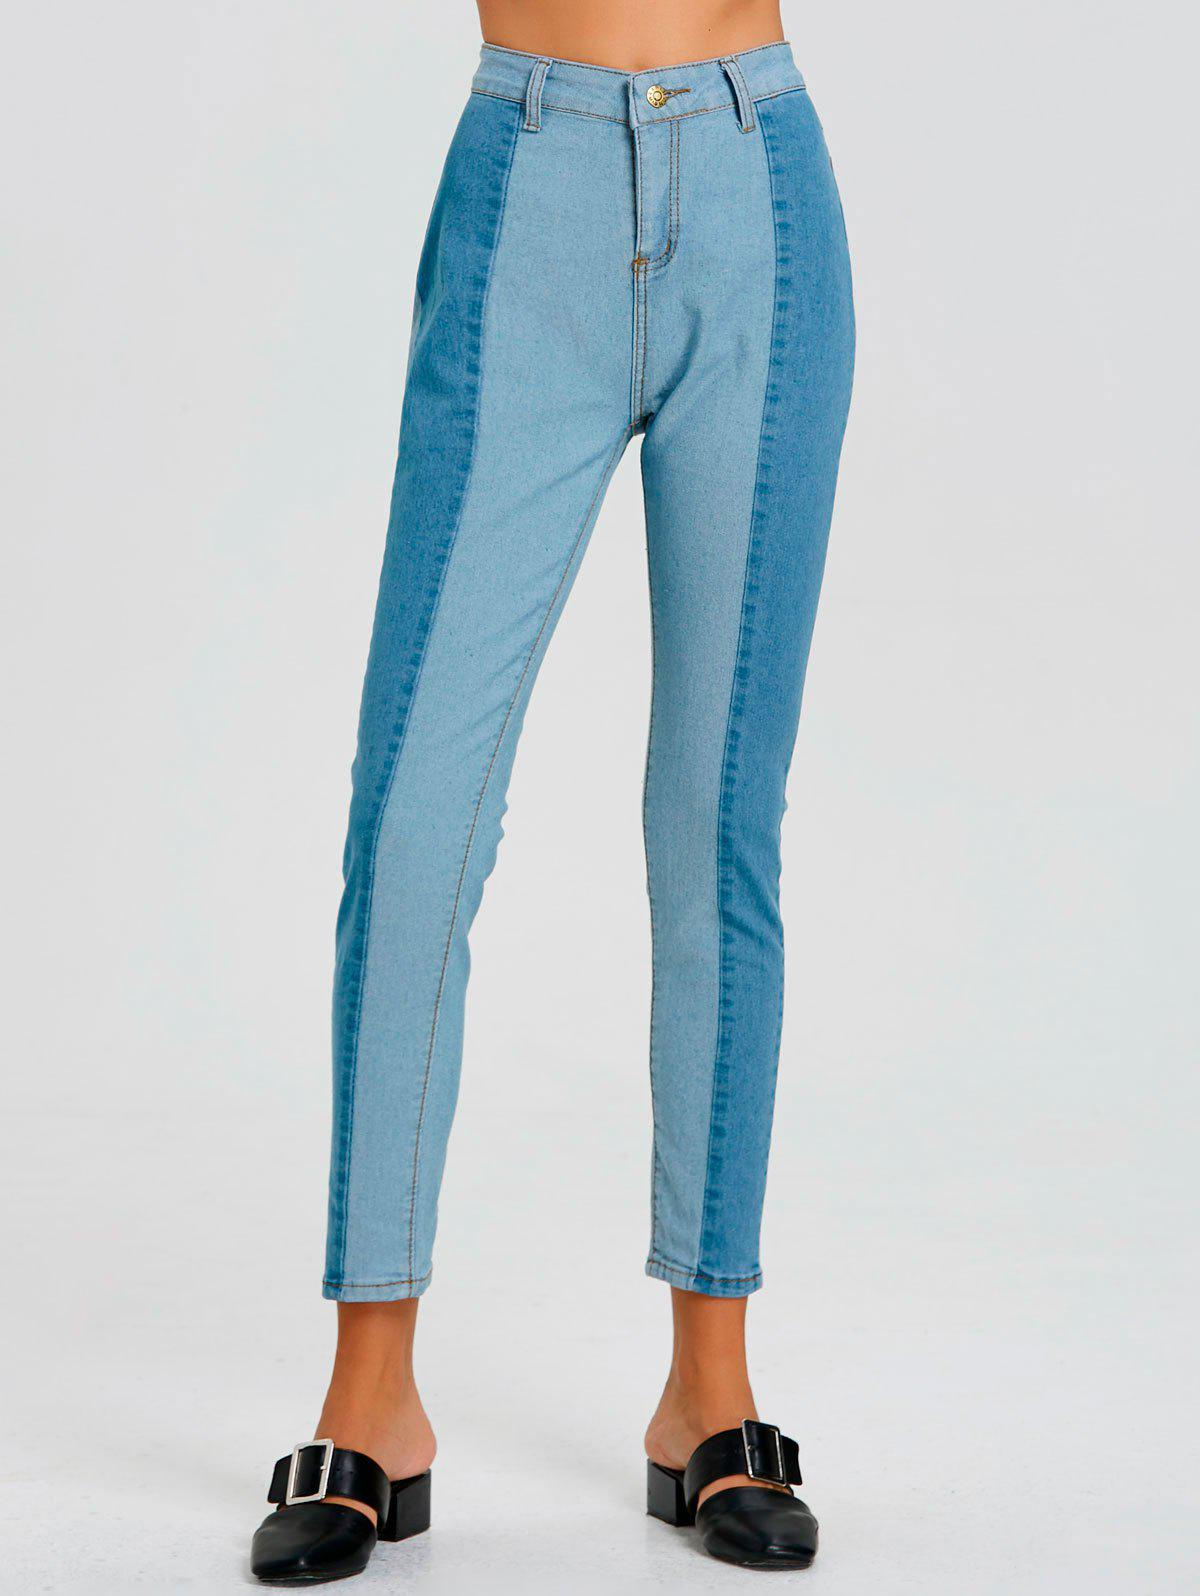 Color Block Striped Jeans - BLUE M